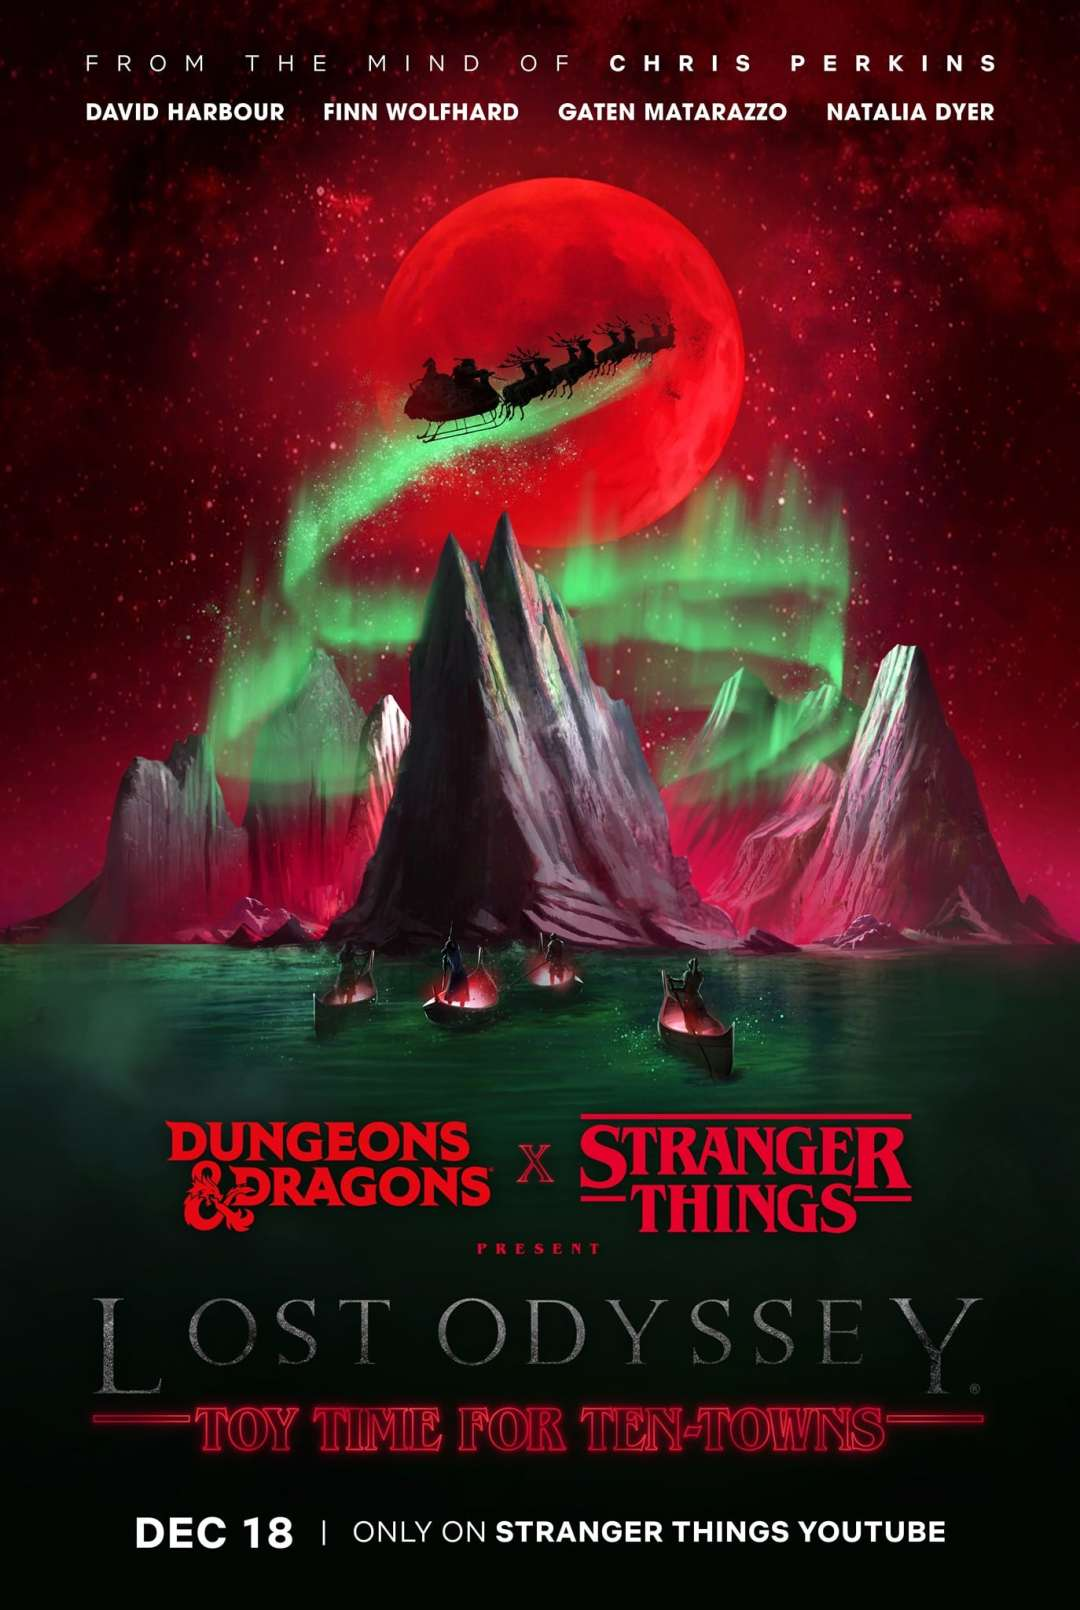 Stranger Things Dungeons and Dragons Dungeons & Dragons Lost Odyssey poster